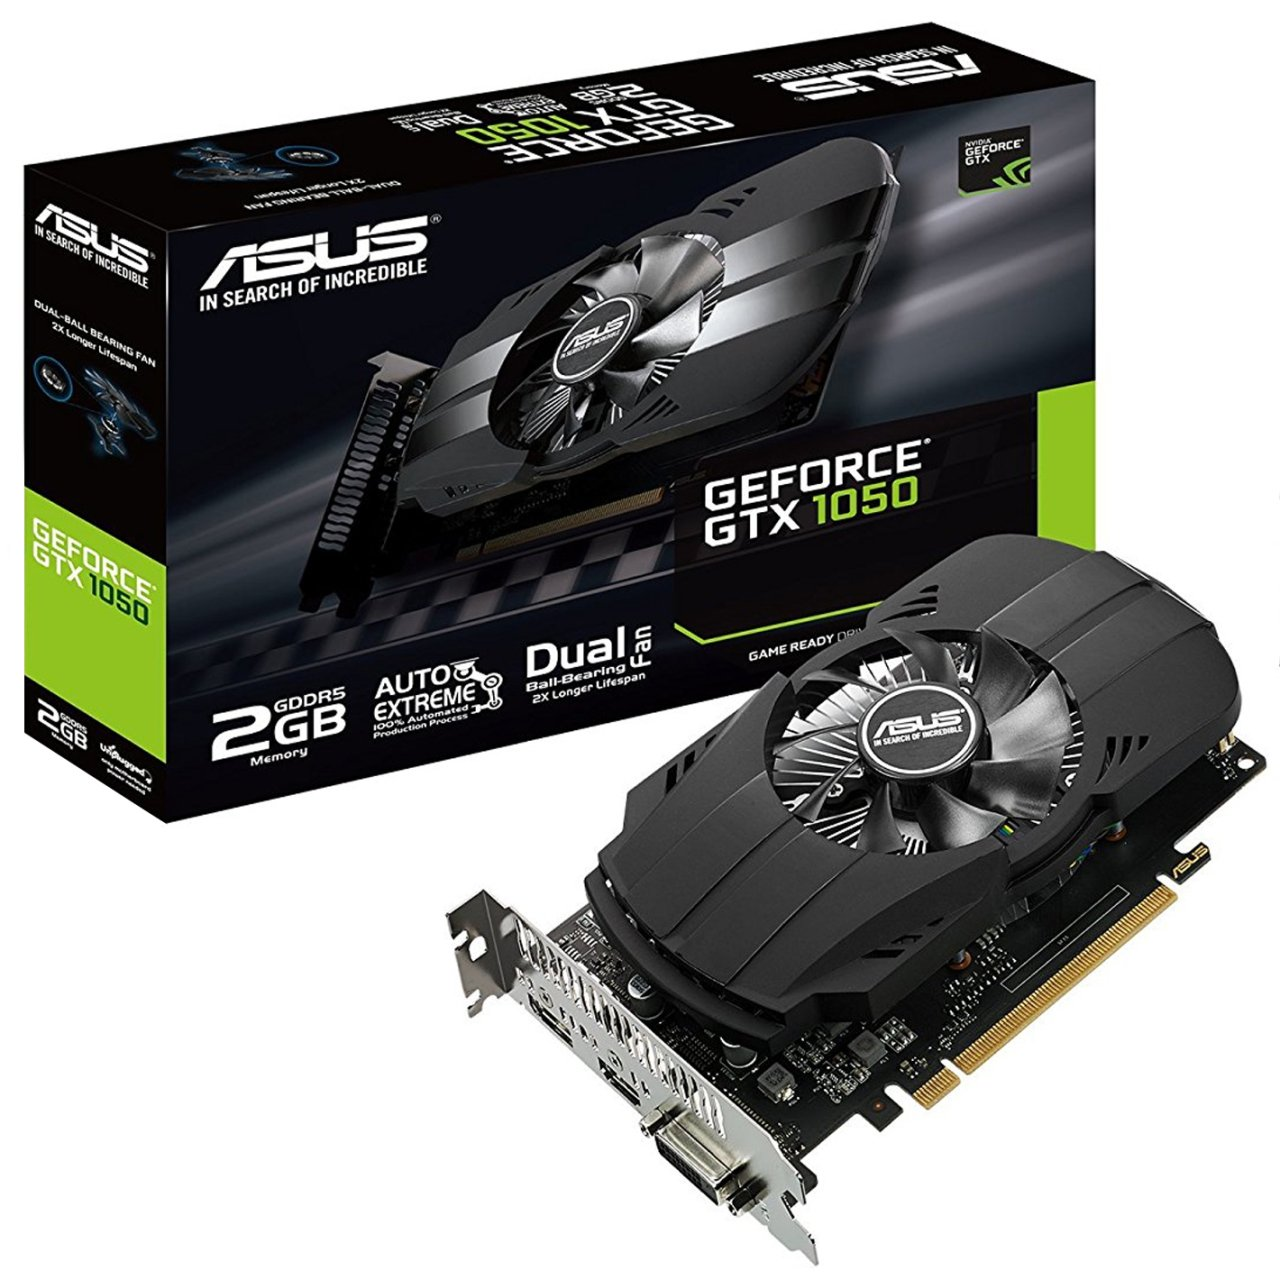 Видеокарта GeForce GTX1050 2048Mb DDR5 (Asus) (PH-GTX1050-2G) box